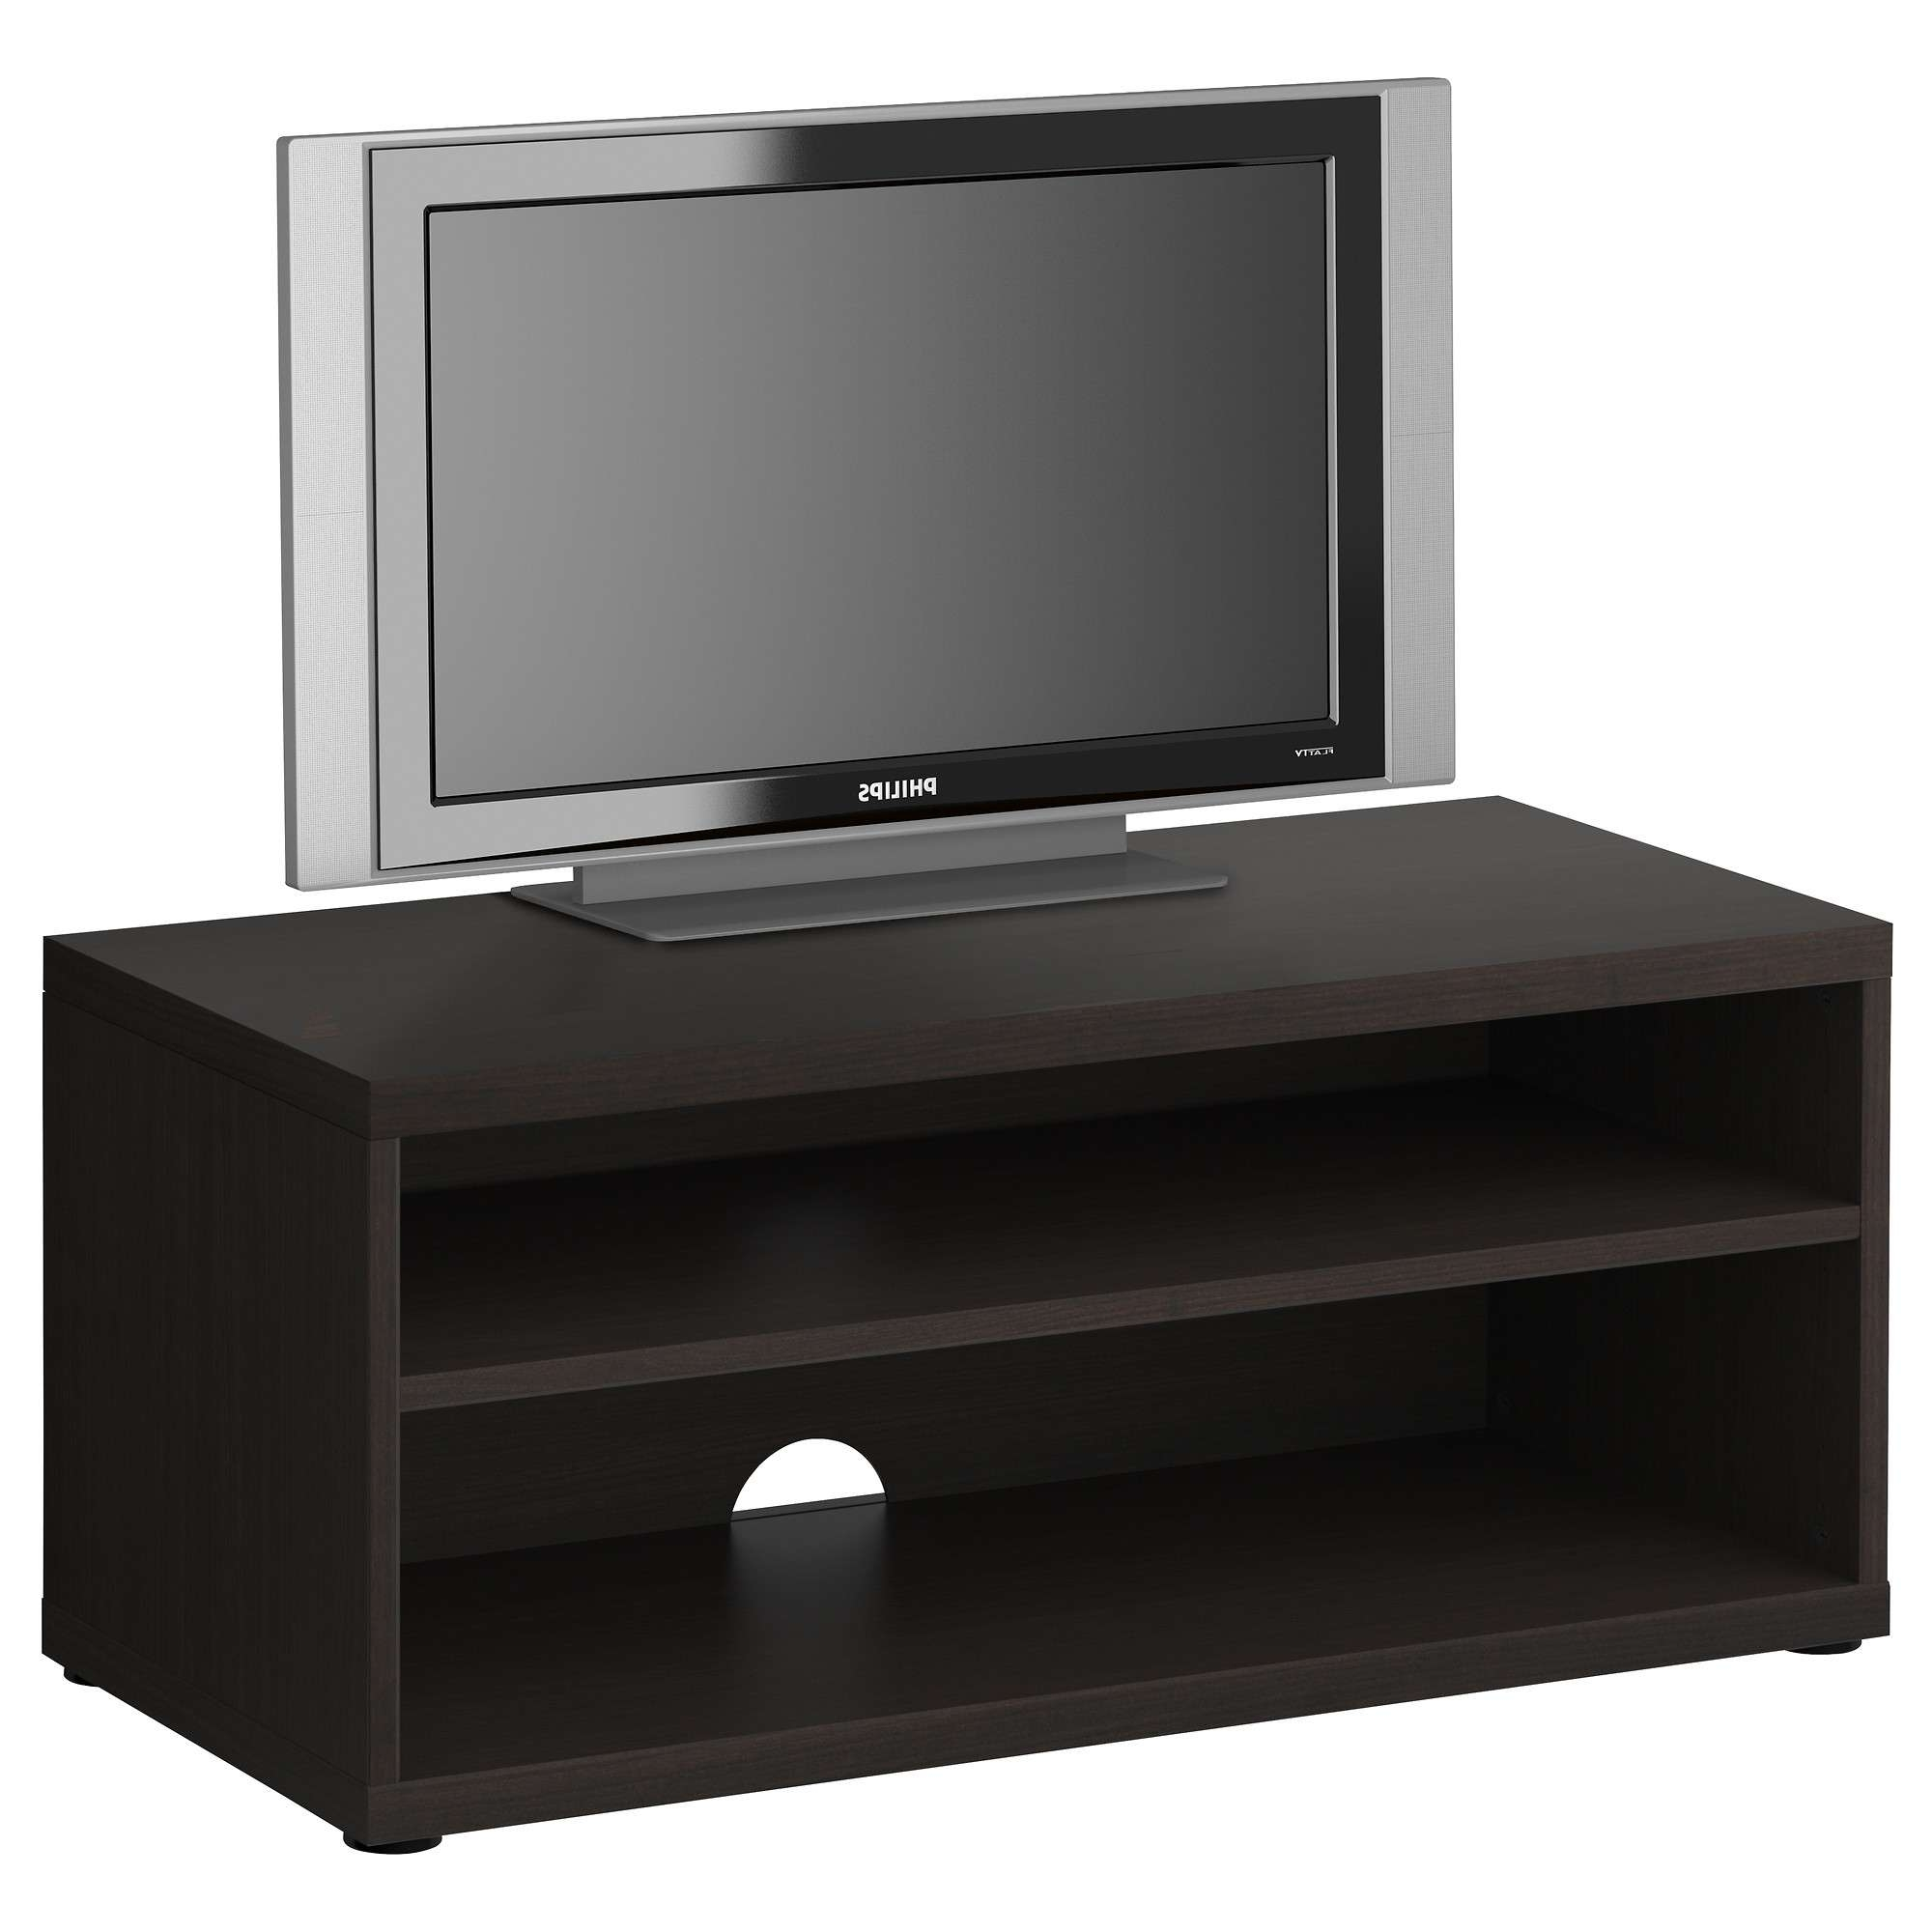 Tv Stands & Tv Units | Ikea With Regard To Compact Corner Tv Stands (View 15 of 15)